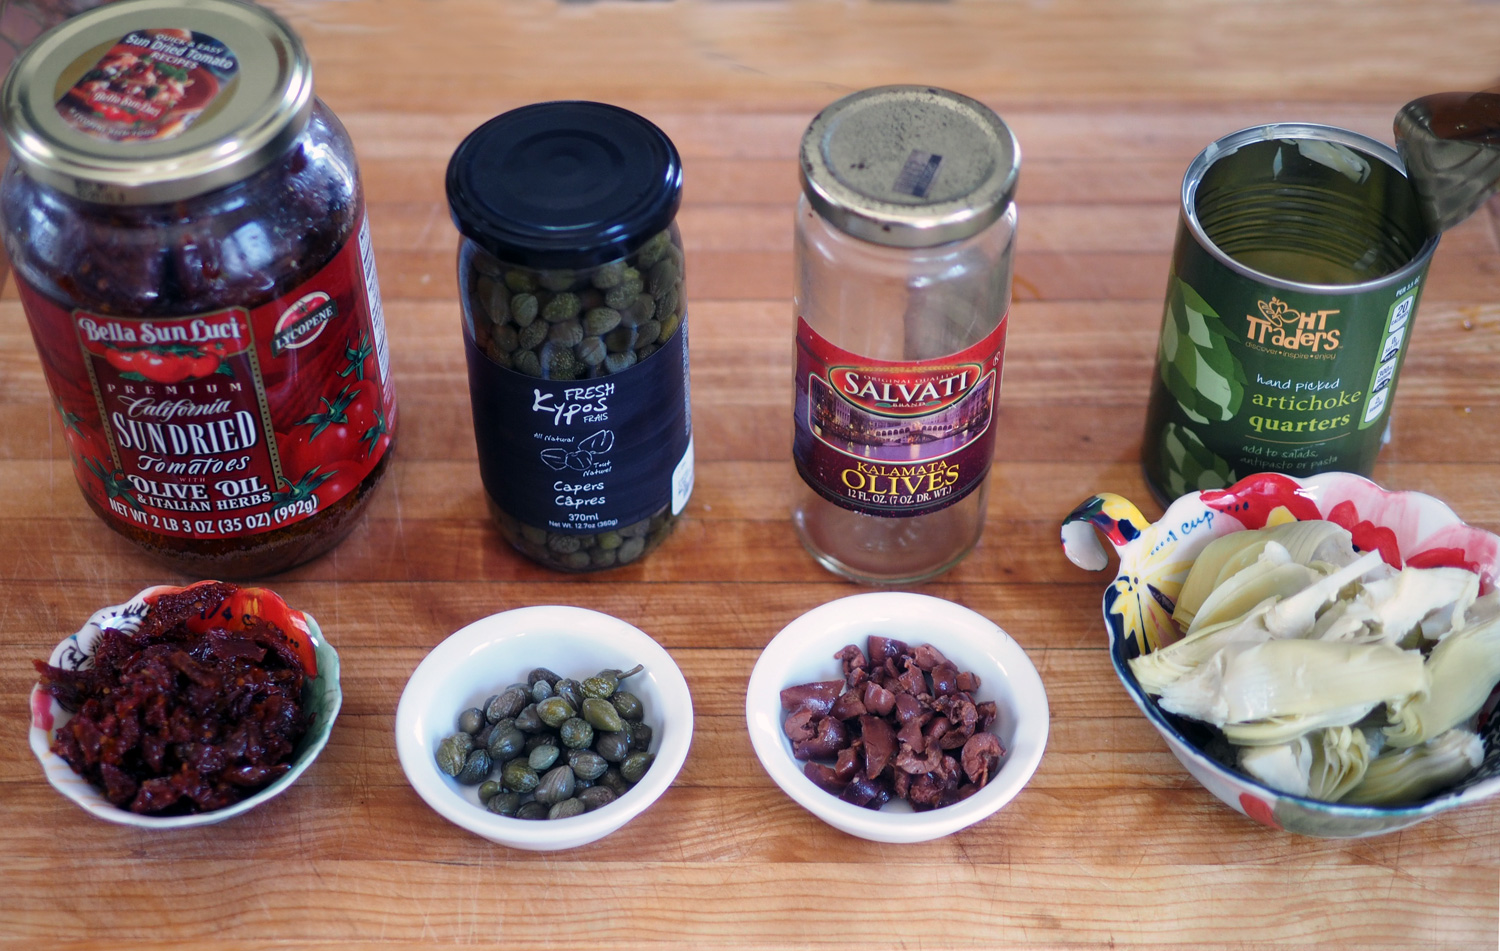 The aromatic line up: Sun-dried tomatoes, capers, Kalamata olives, artichoke hearts.(Notice I only had a few olives, so that's the amount I used.)